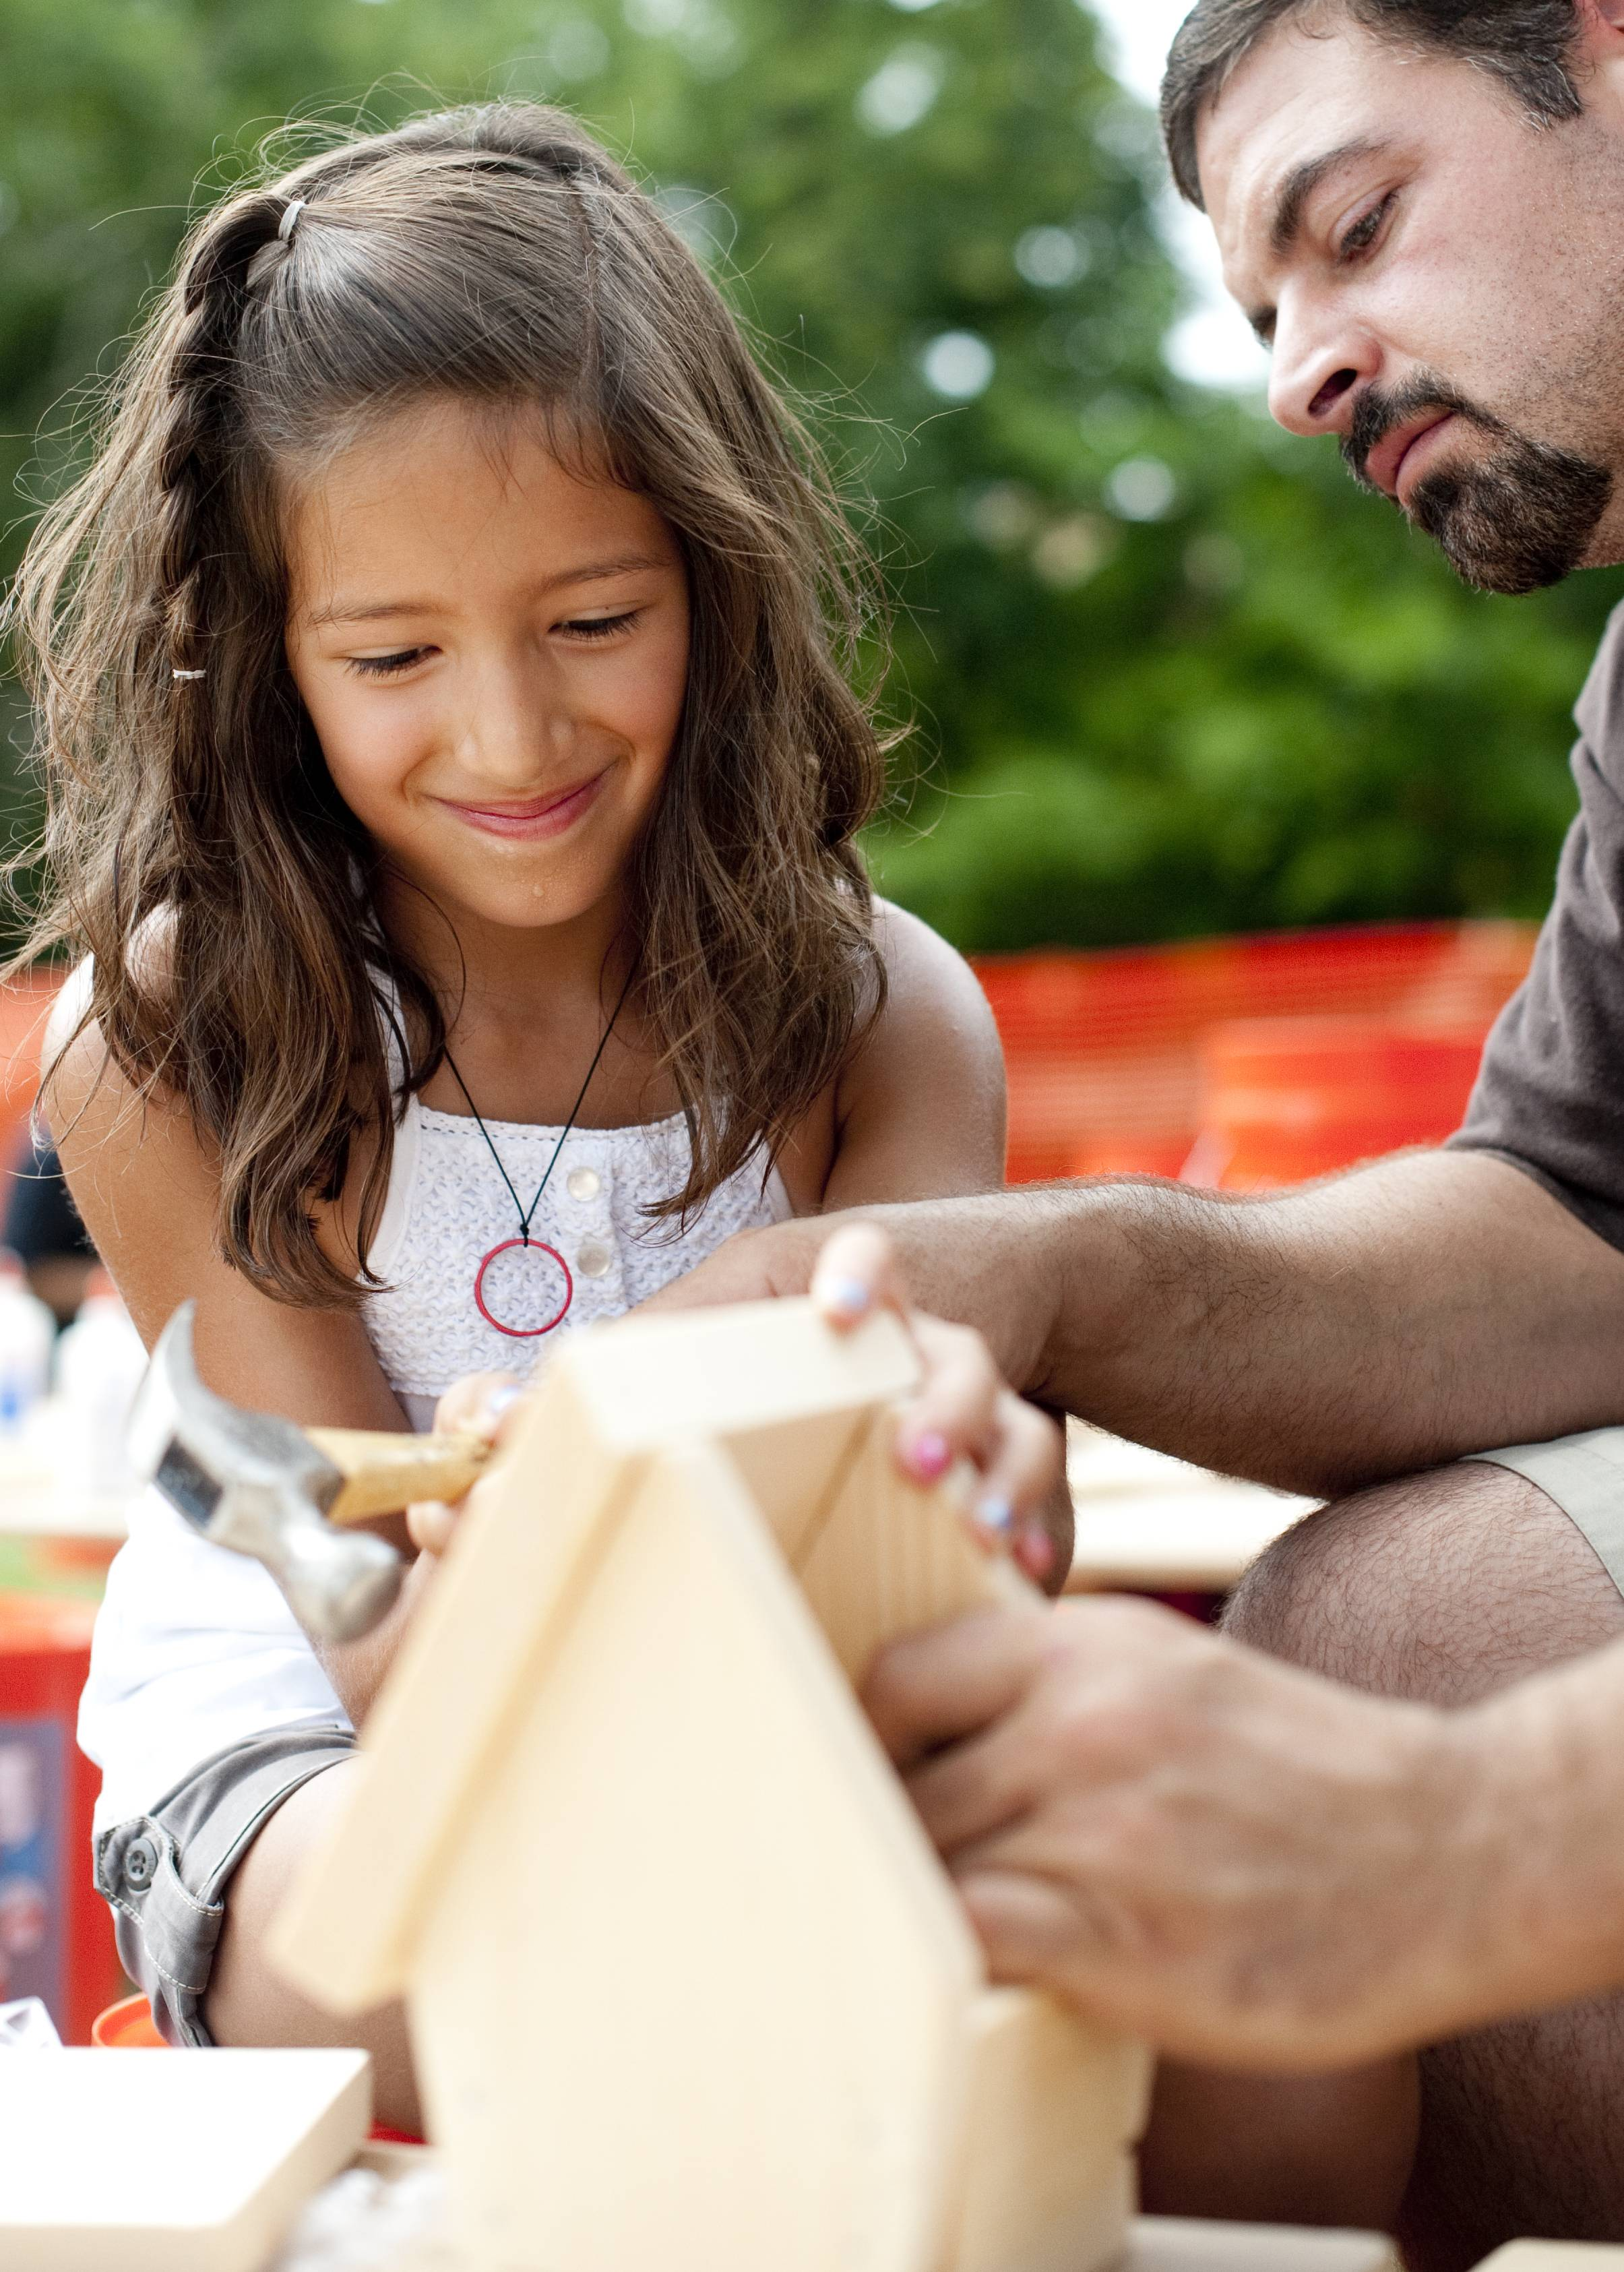 Alexis Celentano, 7, of Cary gets help from her father, David, while putting the roof on a birdhouse in the crafts area of the 52nd Algonquin Founders' Days festival.